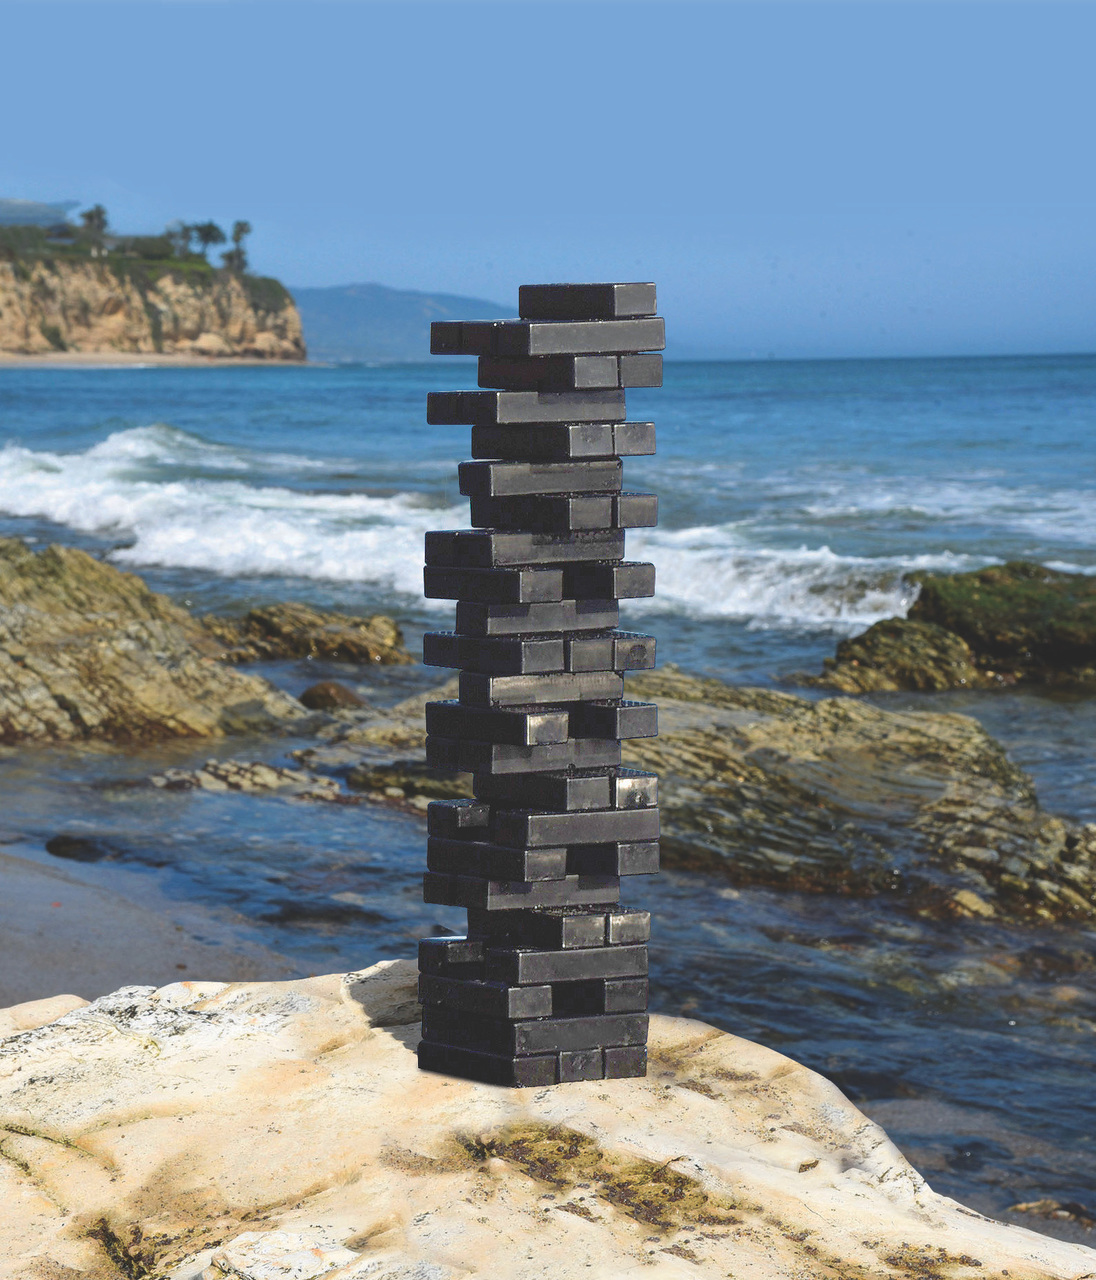 Jenga_Ocean_4-28_5_horizon_adjustment_cropped__17365.1511638537.1280.1280.jpg